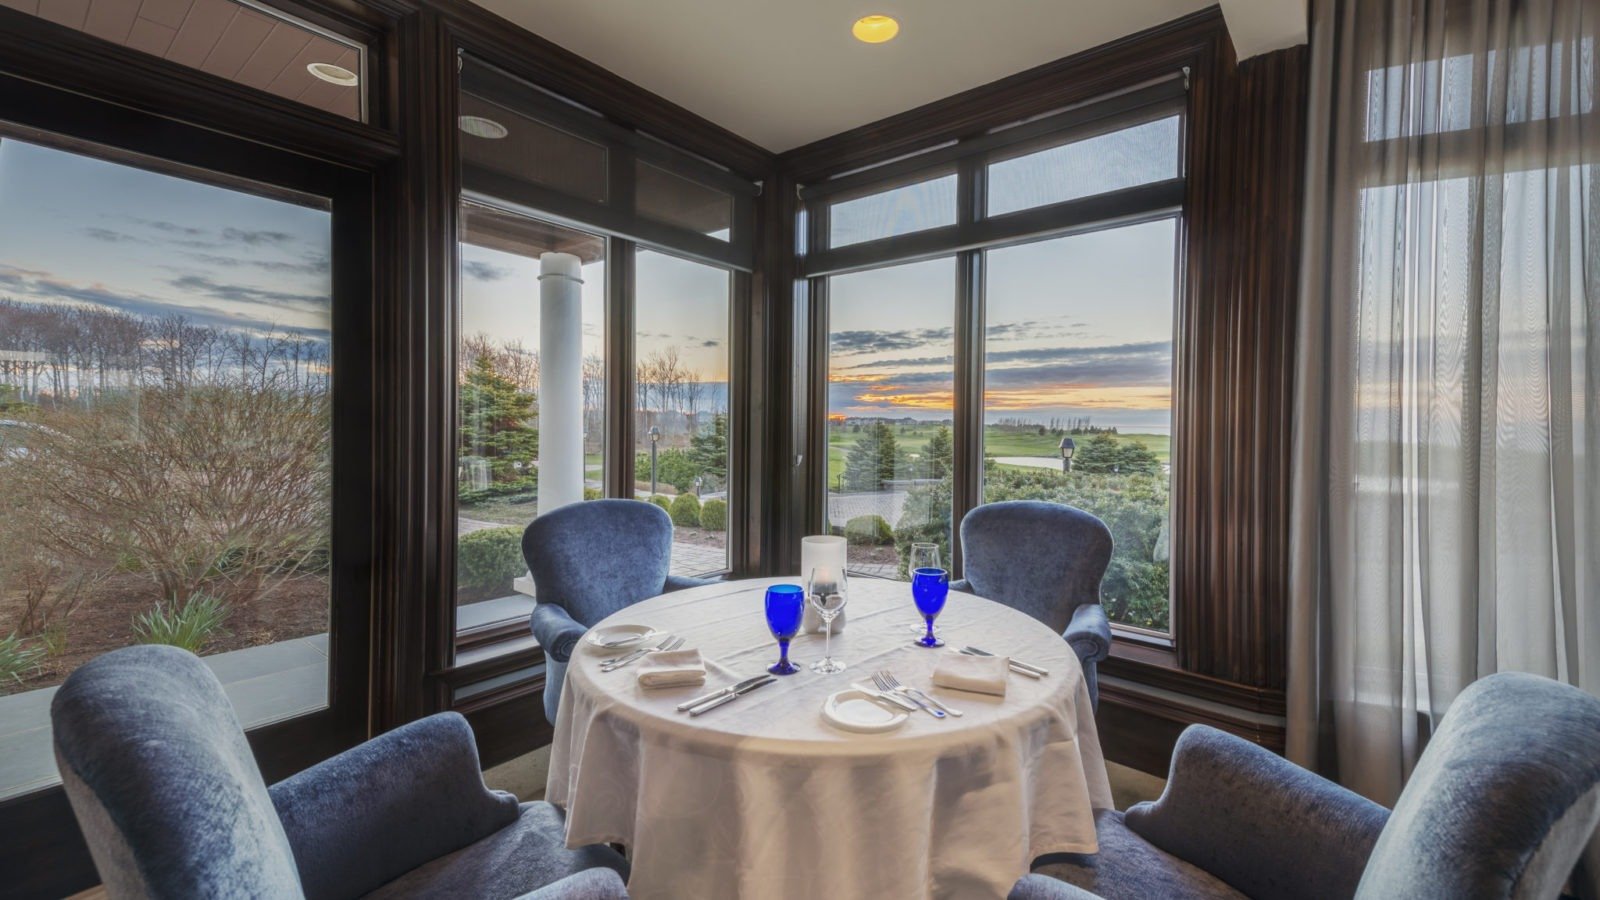 fox-harbr-resort-cape-cliff-dining-room-large_24191793687_o